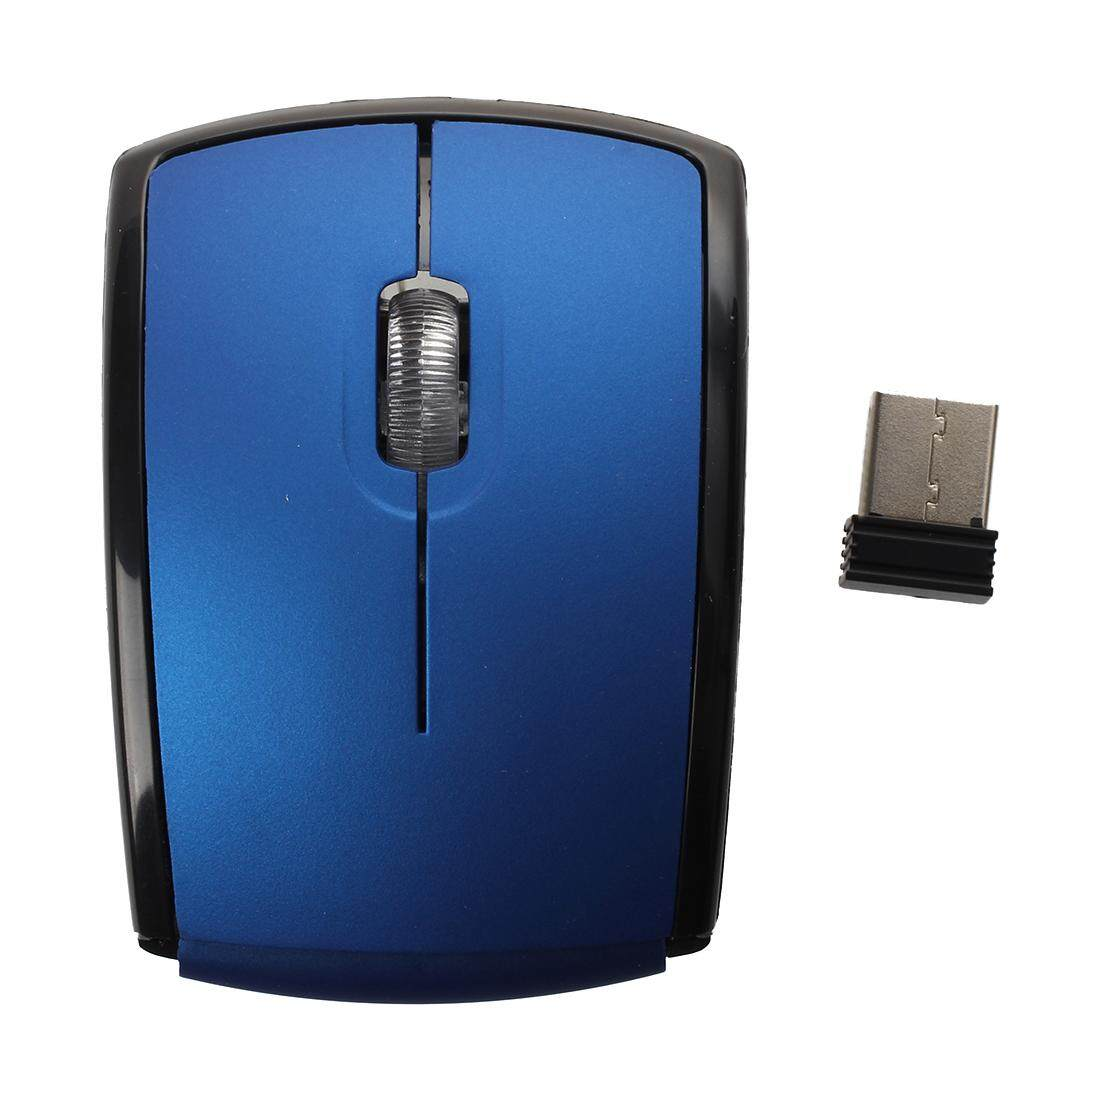 1200 dpi Wireless Mouse Gaming Mouse LED Foldable 3 Button 2,4GHZ Blue + Black